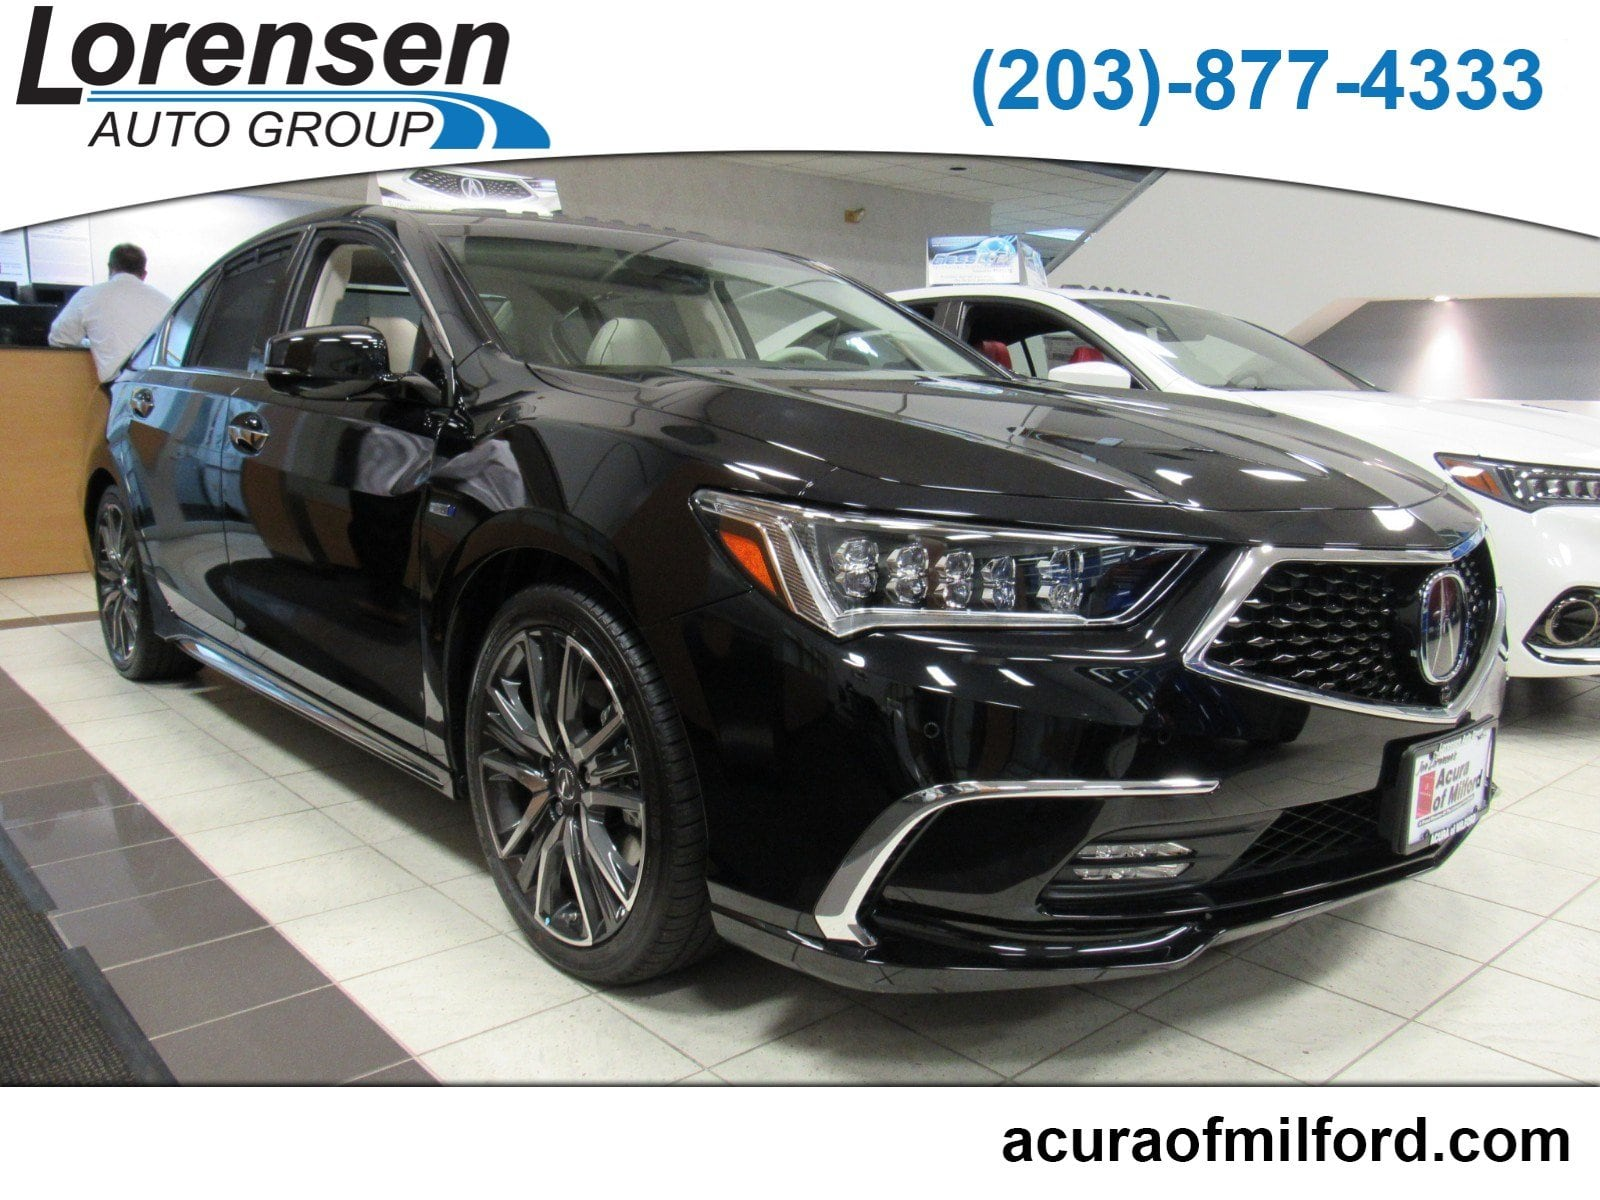 New 2019 Acura RLX Sport Hybrid SHAWD ADV Sedan in Milford